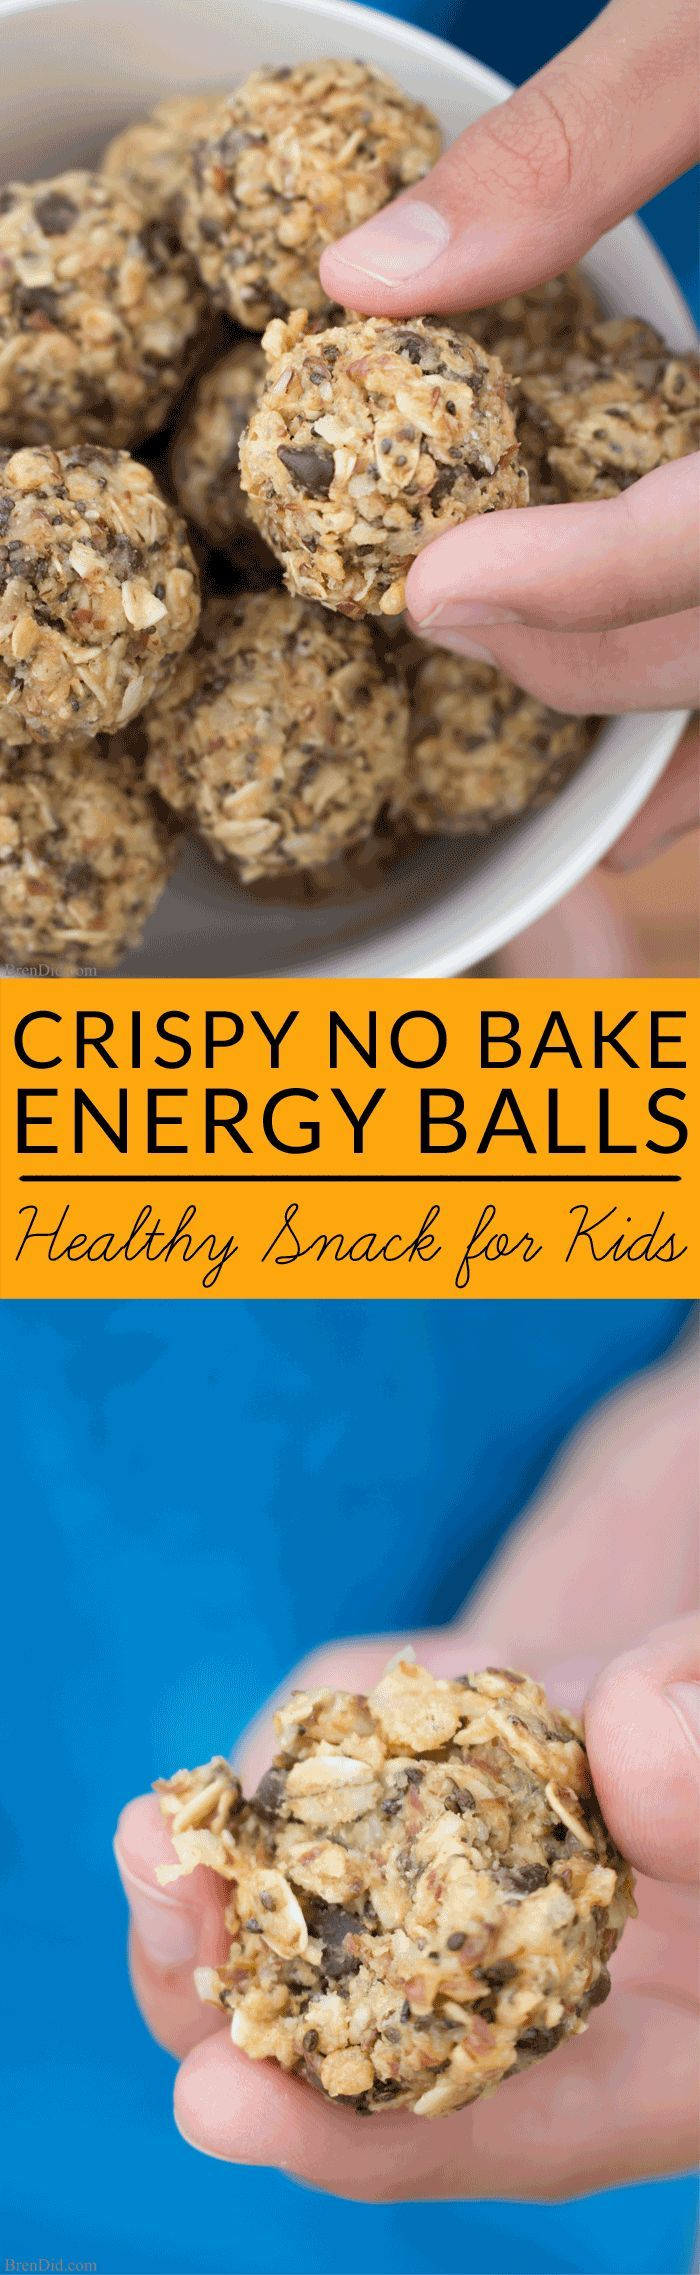 Crispy energy balls are a kid pleasing snack that is low in sugar and calories but high in iron, fiber and protein. Try this easy, no bake recipe today.